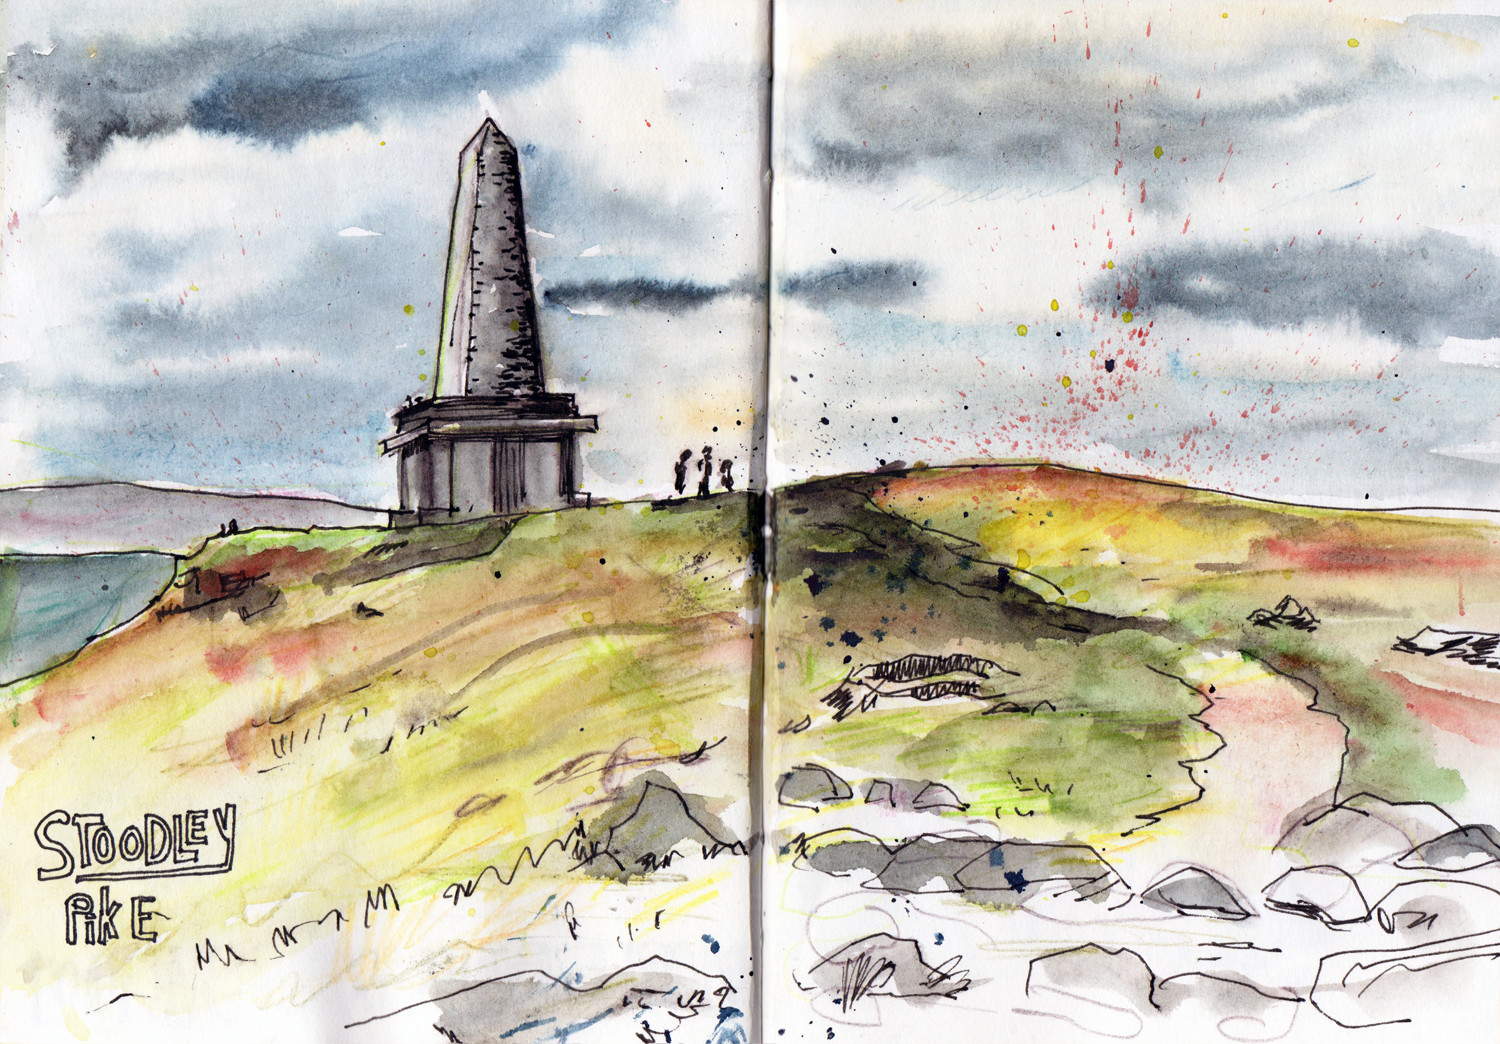 Stoodley Pike - quick landscape sketch in watercolour by Sophie Peanut